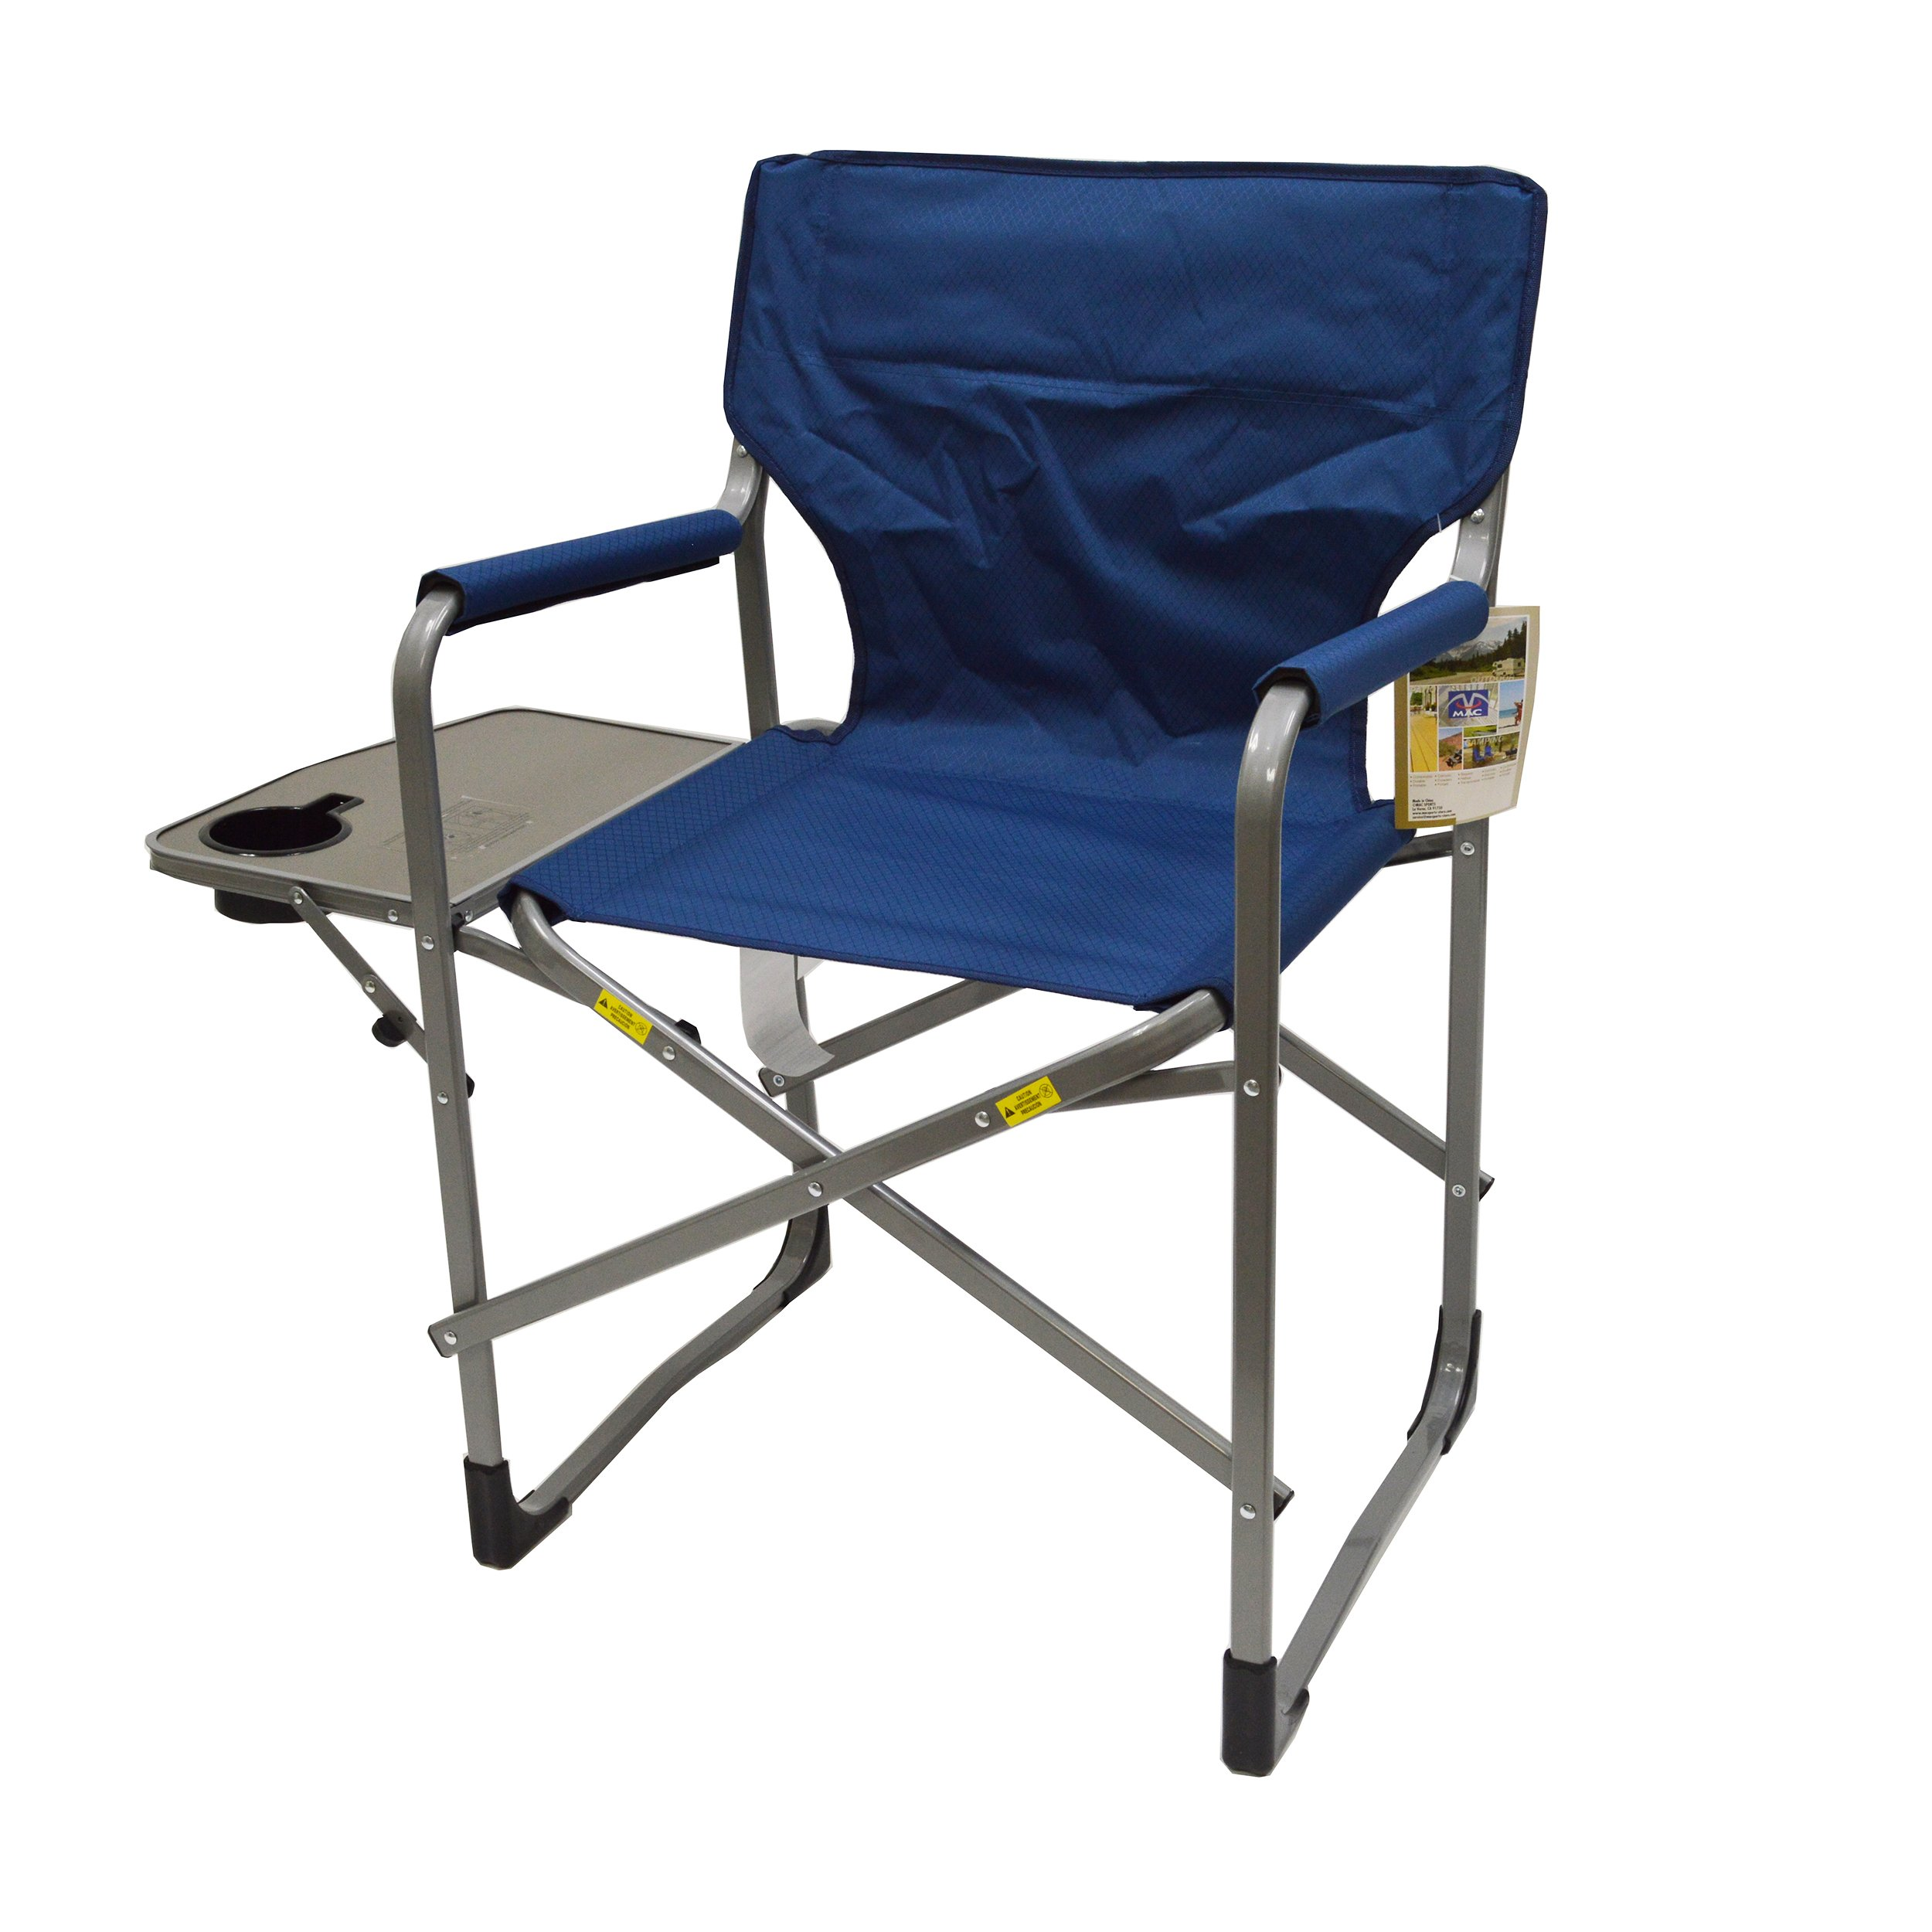 Deluxe Director's Chair with Side Table (Blue)